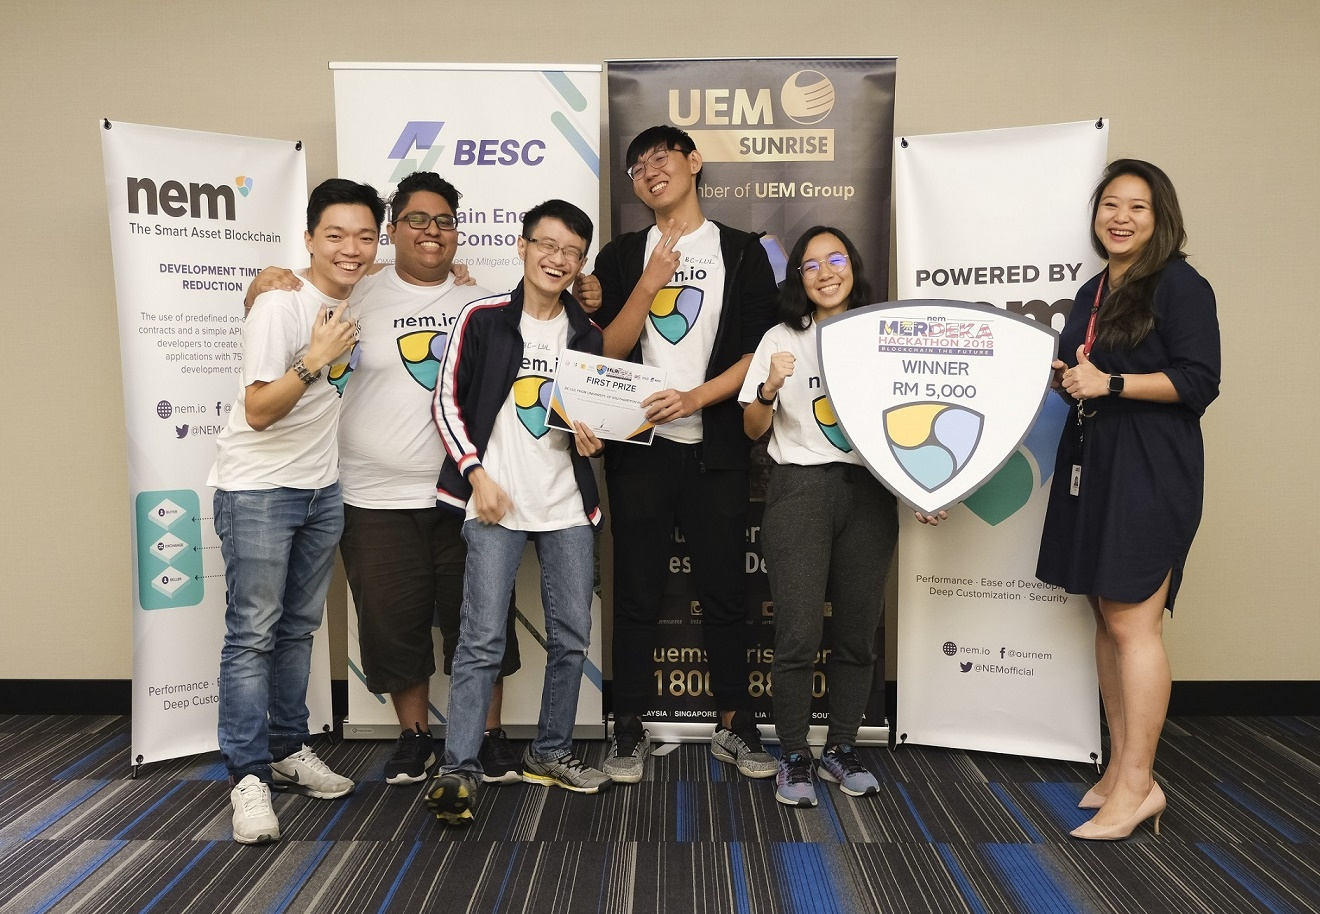 First prize winner of NEM Merdeka Hackathon 2018: Team BC-LUL from University of Southampton Malaysia, with (far right) UEM Sunrise Managing Director's Office deputy senior manager Feng Wai Chia